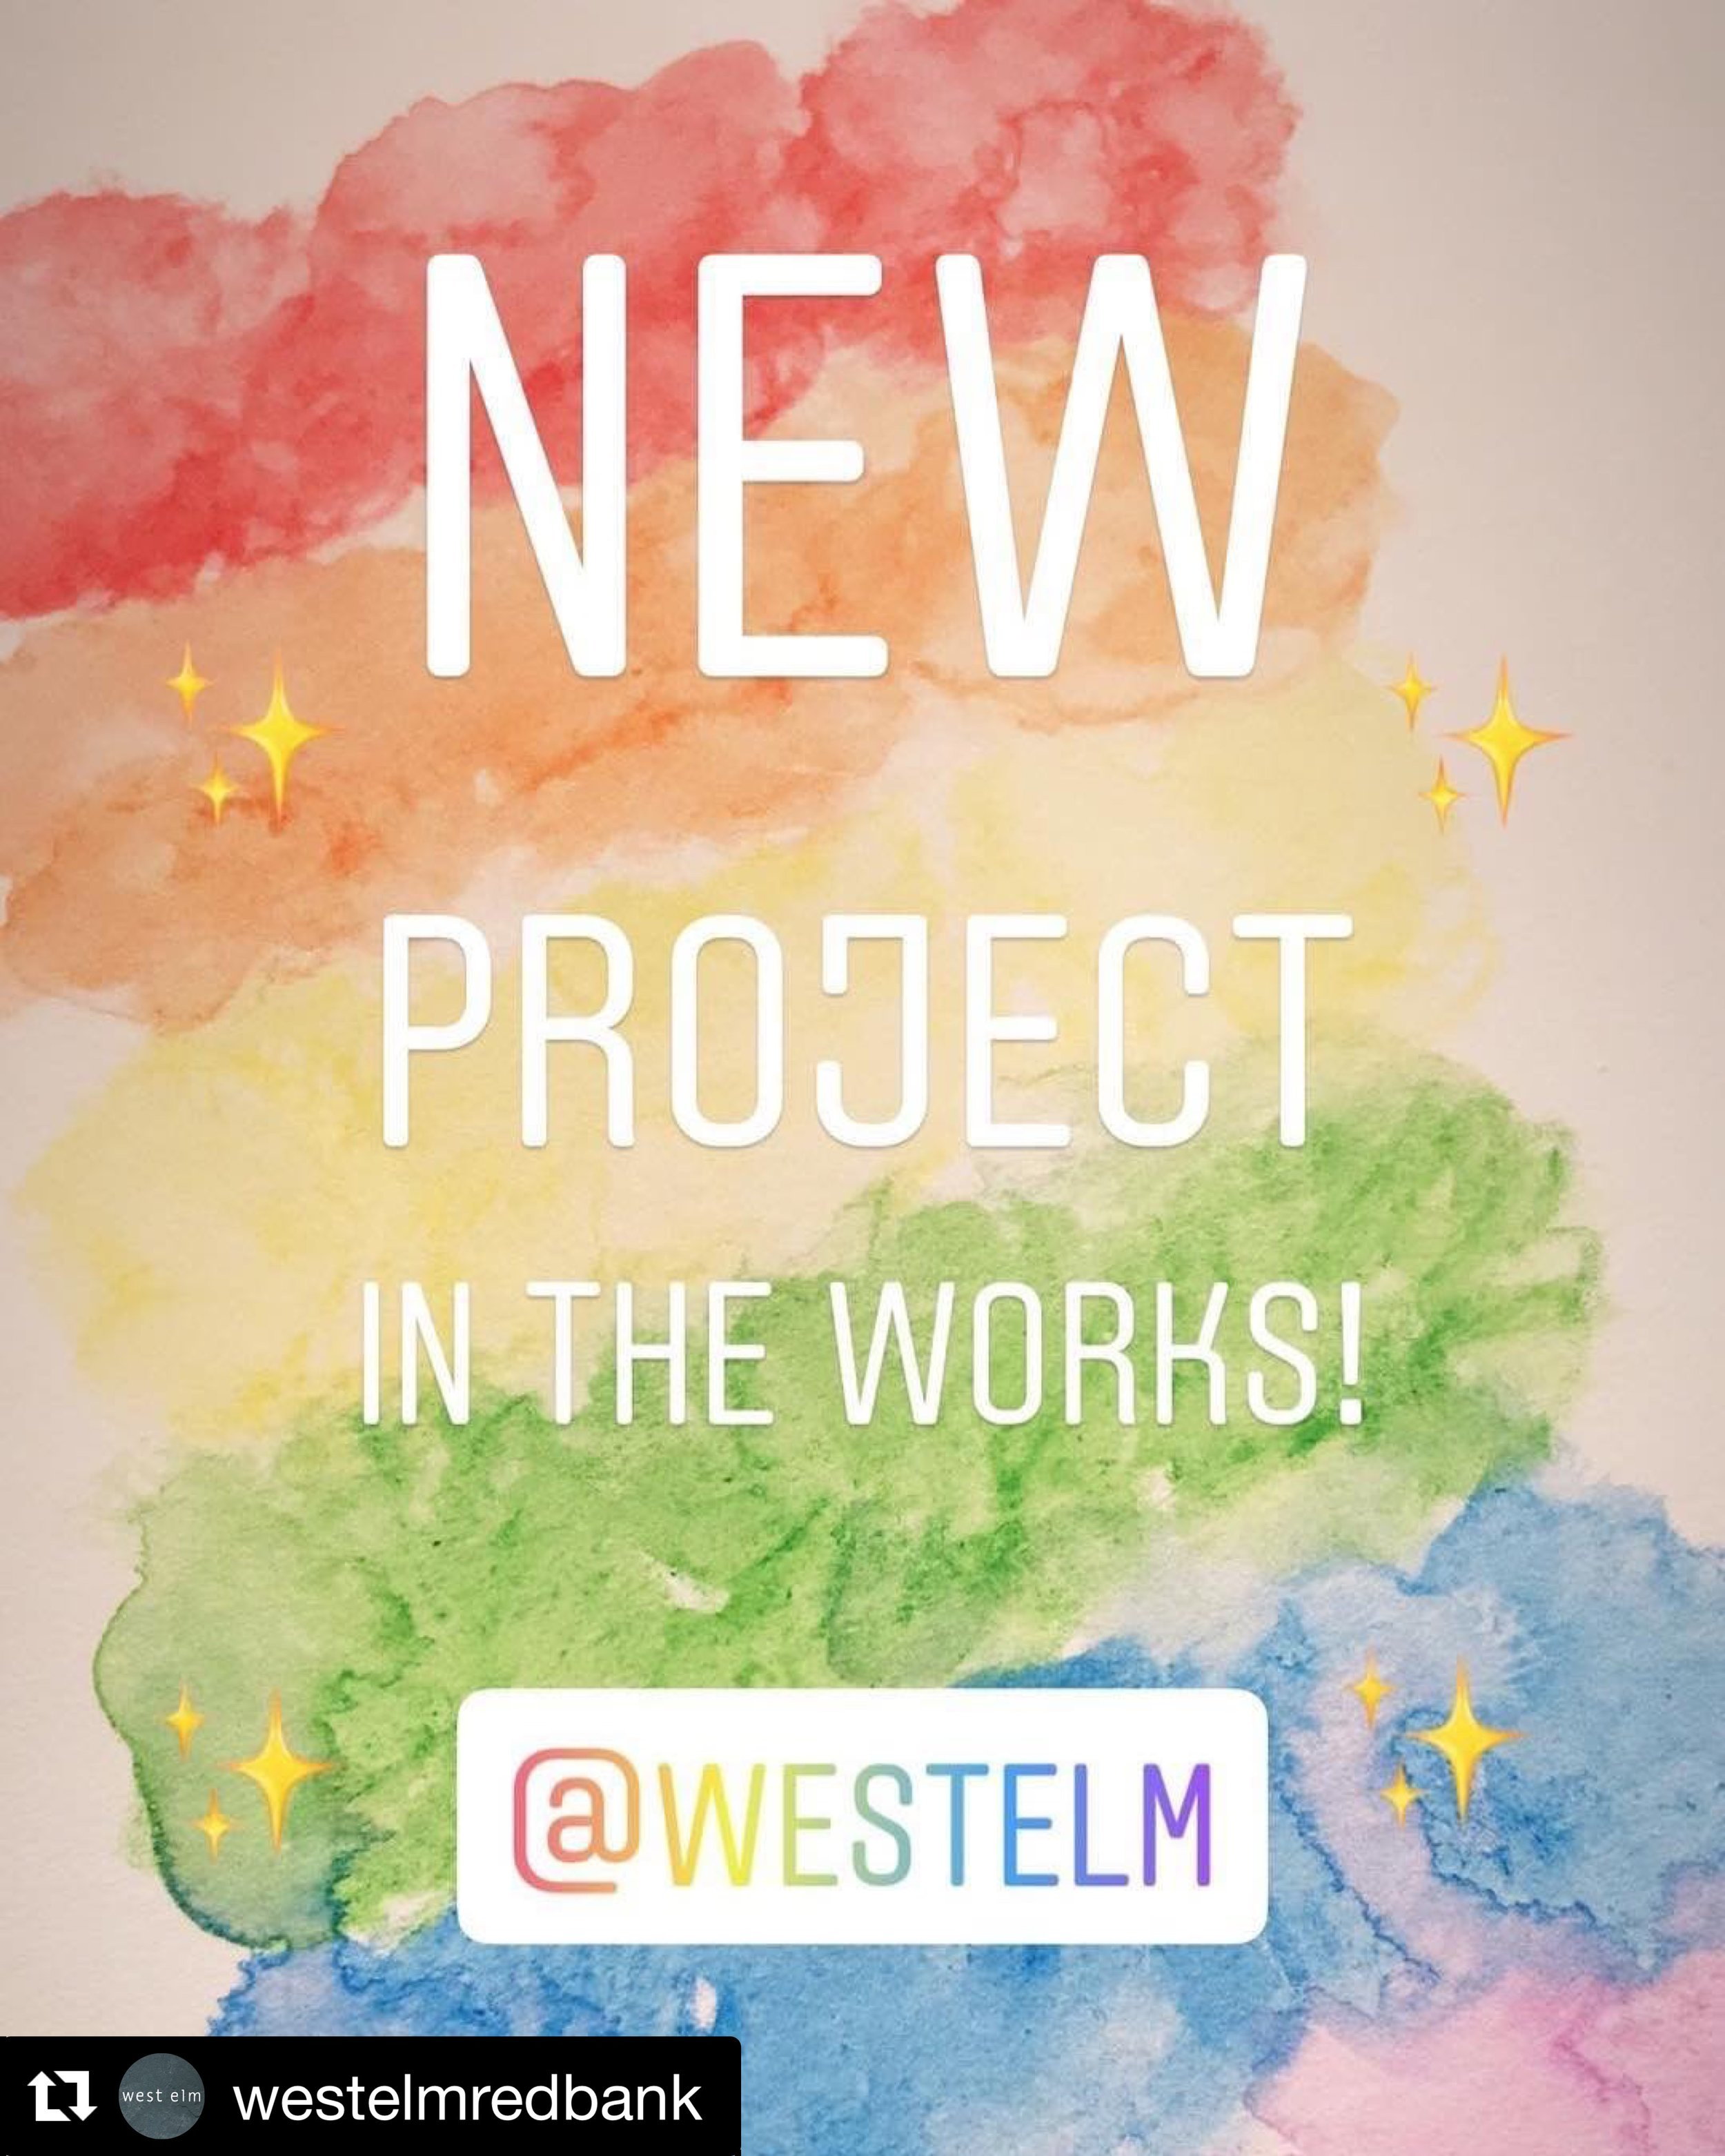 westelmredbank: 🚨COLLABORATION ALERT🚨 @cristinkellydesign is bringing her famous flower 🌸 walls to West Elm! Celebrating Pride Month is something very special here!